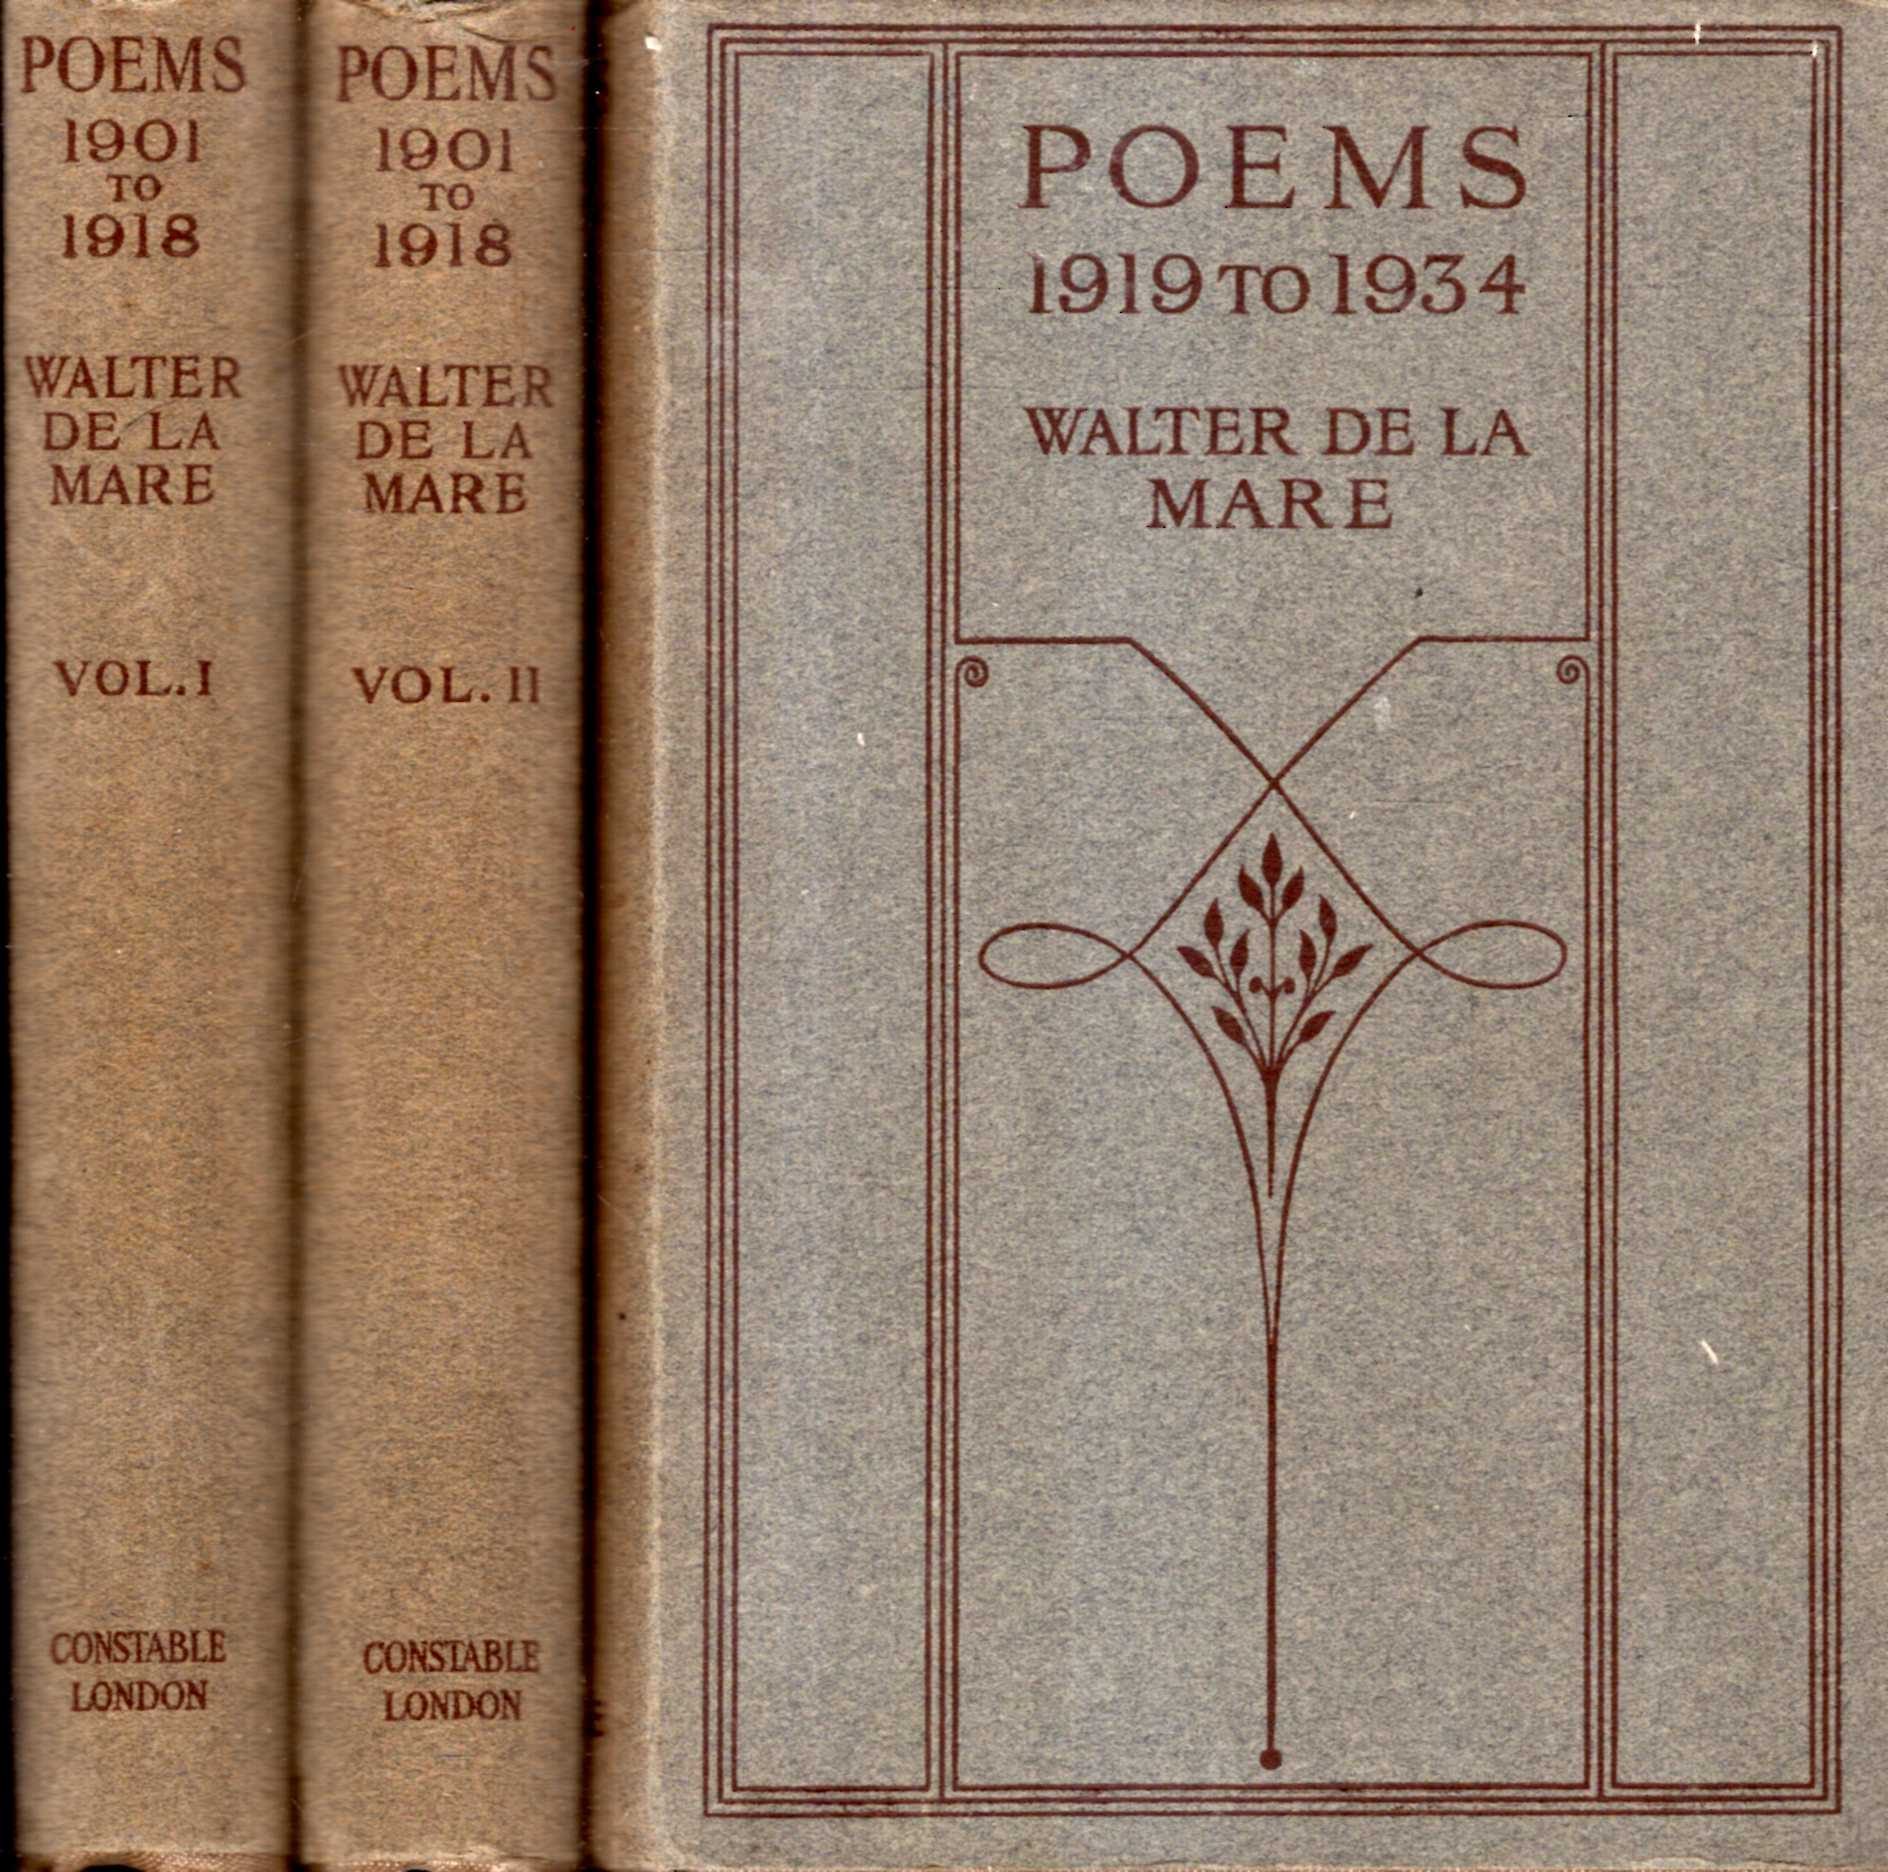 Image for Poems 1901 to 1934 (three volumes)